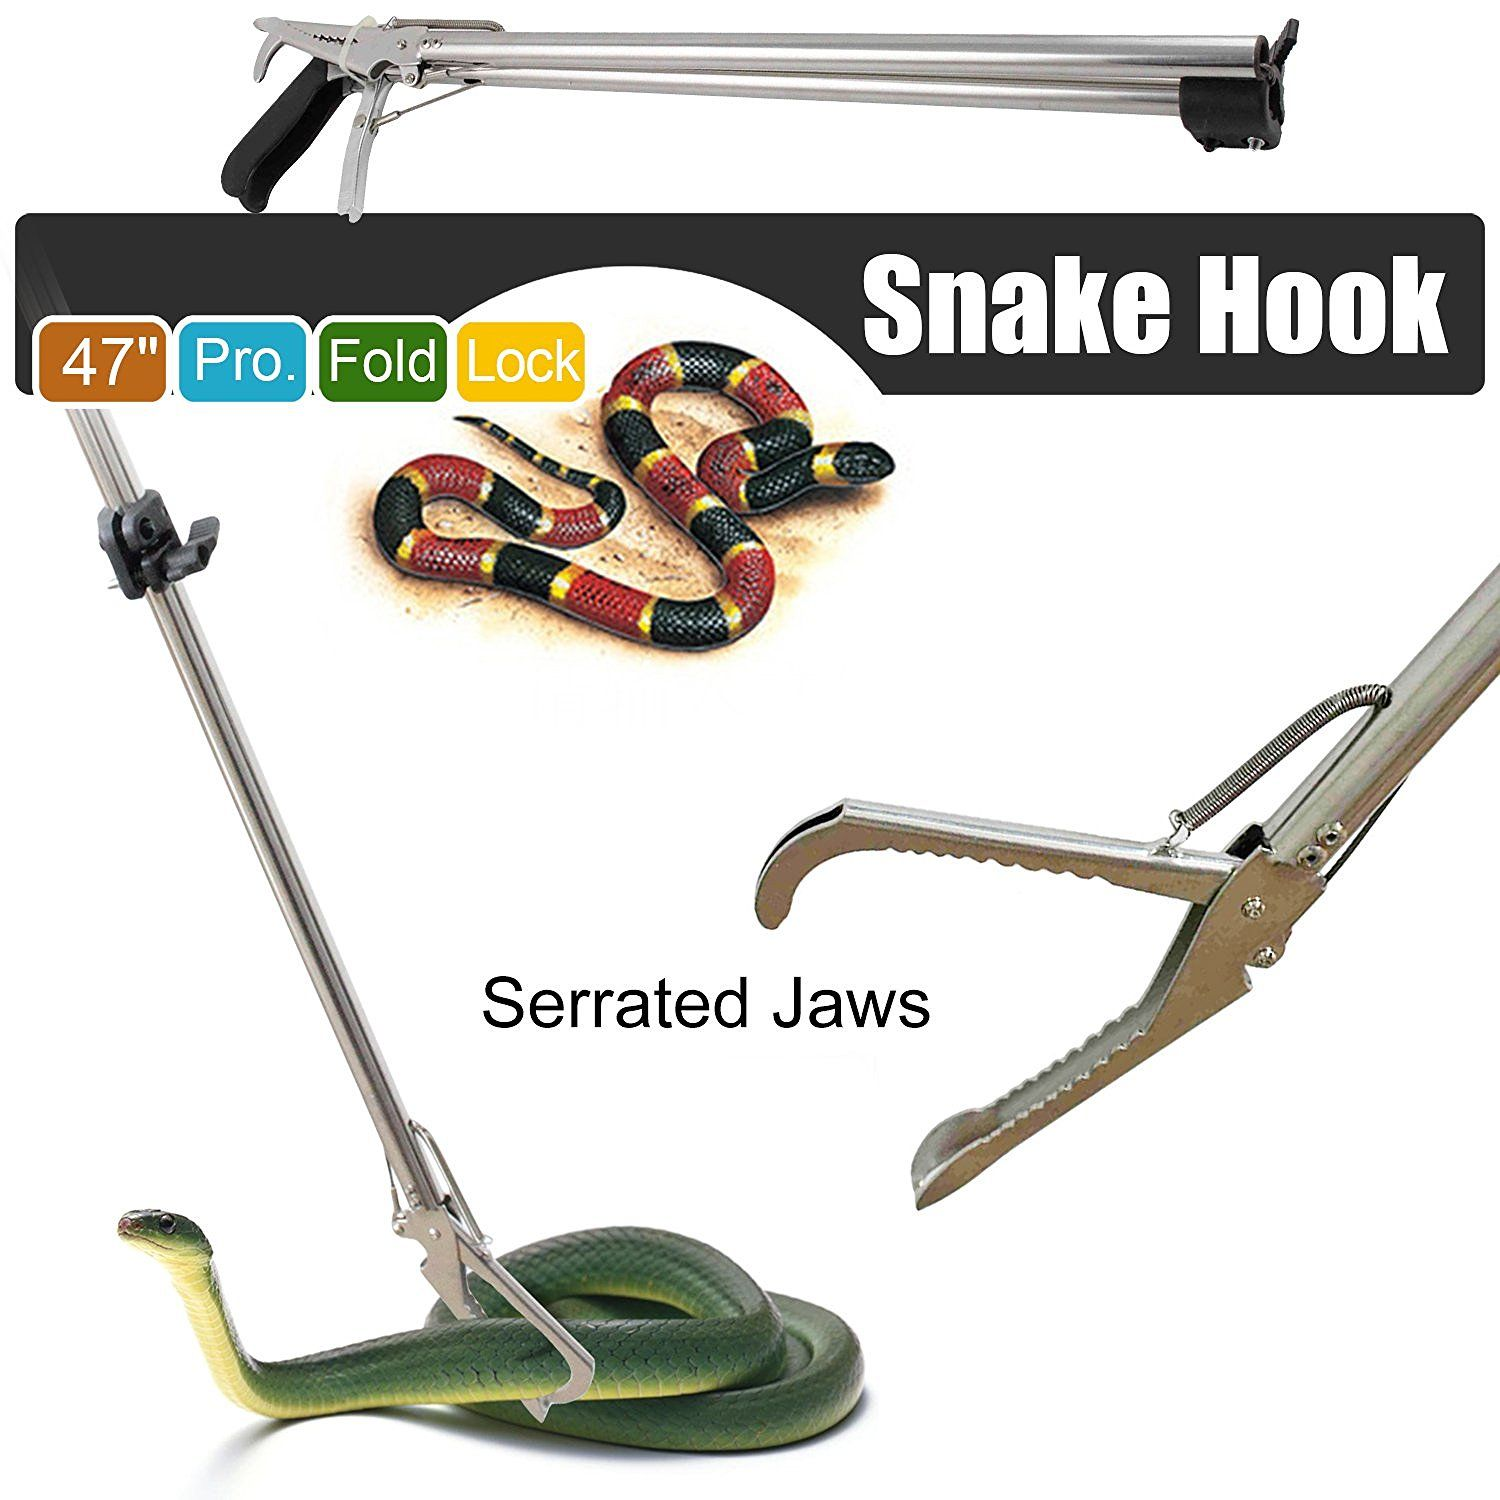 47 Inch Professional Stainless Steel Snake Tongs Reptile Catcher Stick Rattlesnake Grabber Pick-up Handling Tool with Zigzag Wide Jaw Foldable Snake Catcher snake hook